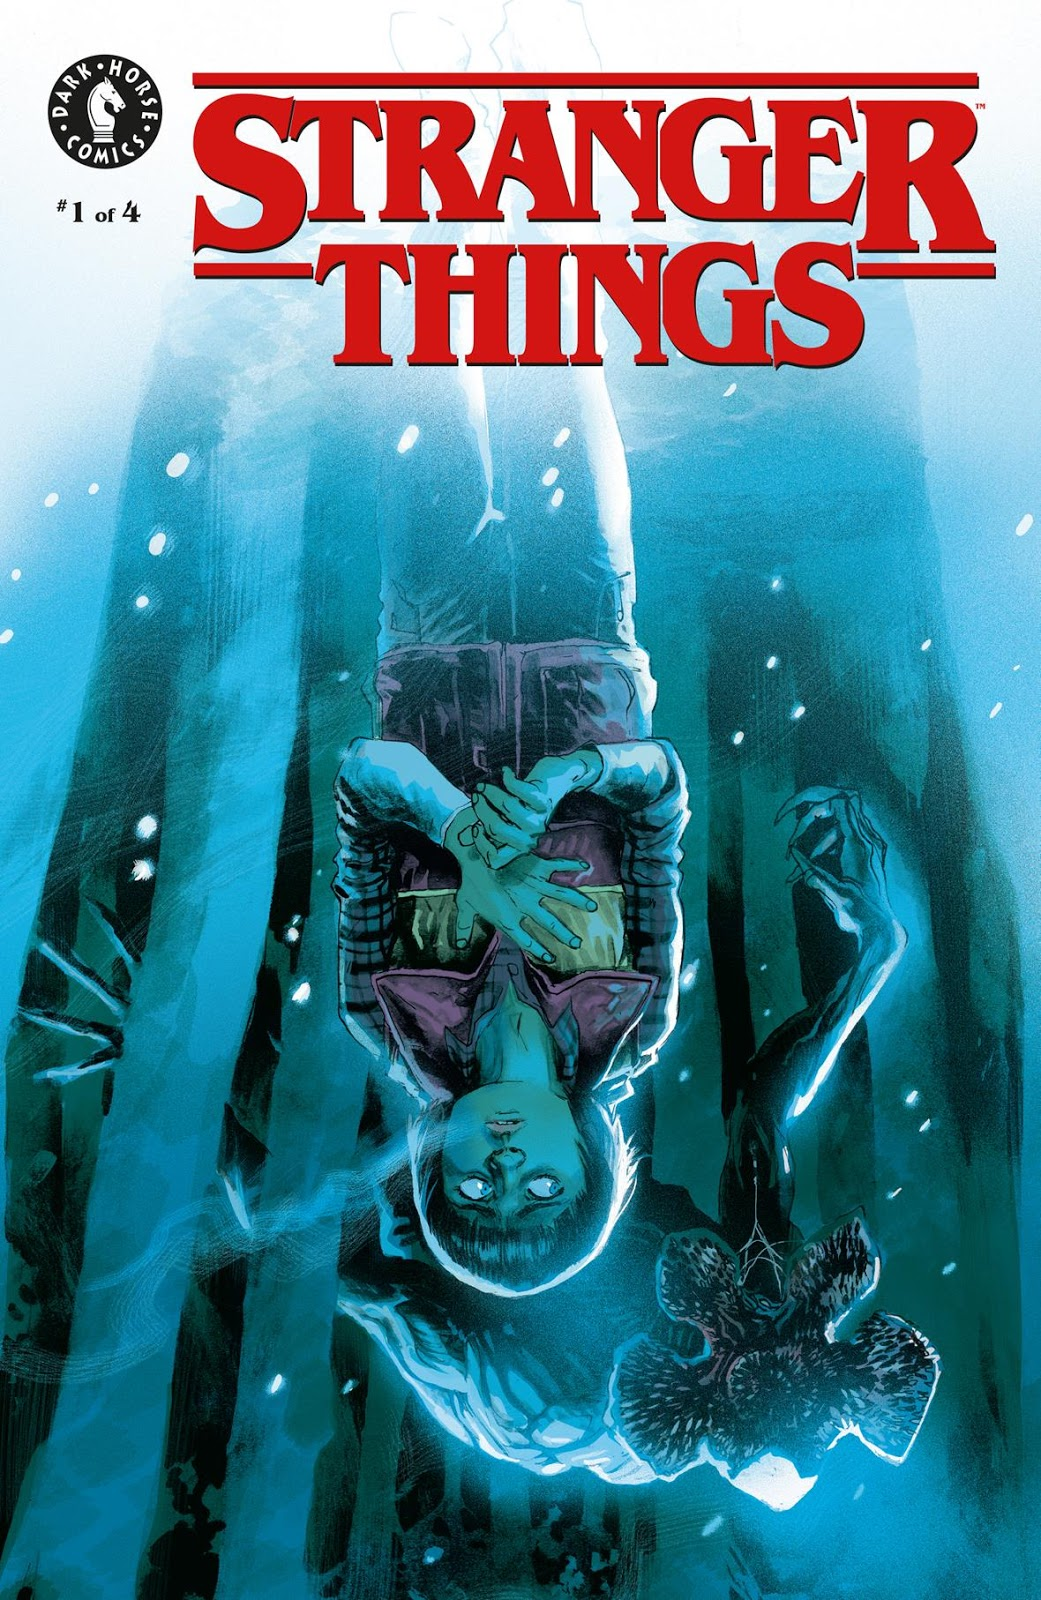 Stranger Things #1 Variant Cover by Rafael Albuquerque